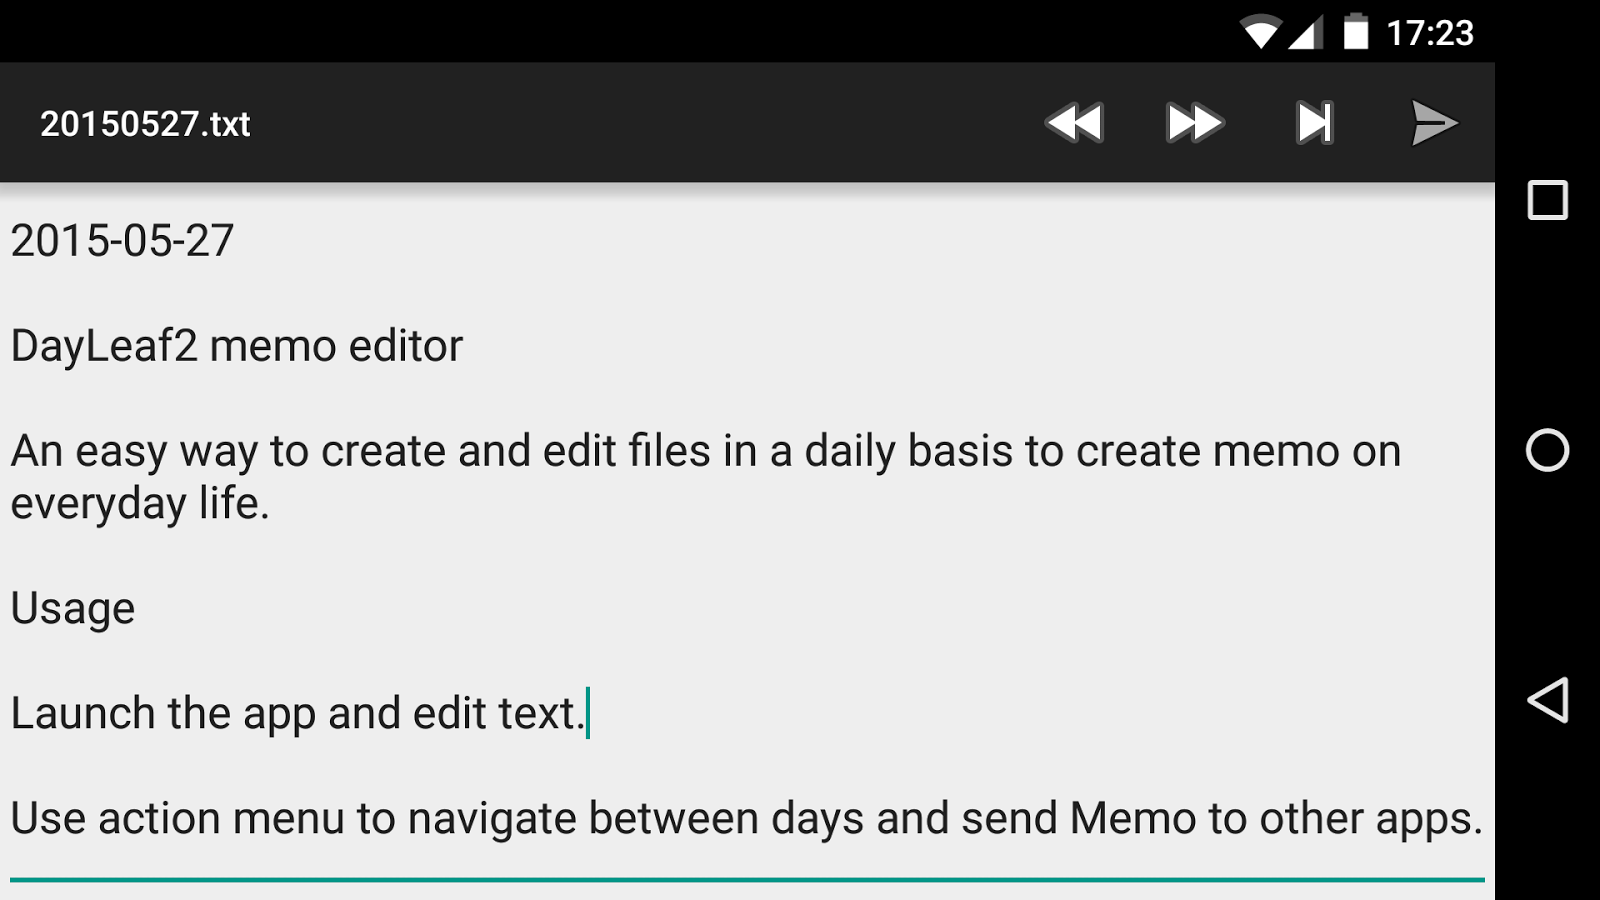 dayleaf memo editor android apps on google play dayleaf2 memo editor screenshot